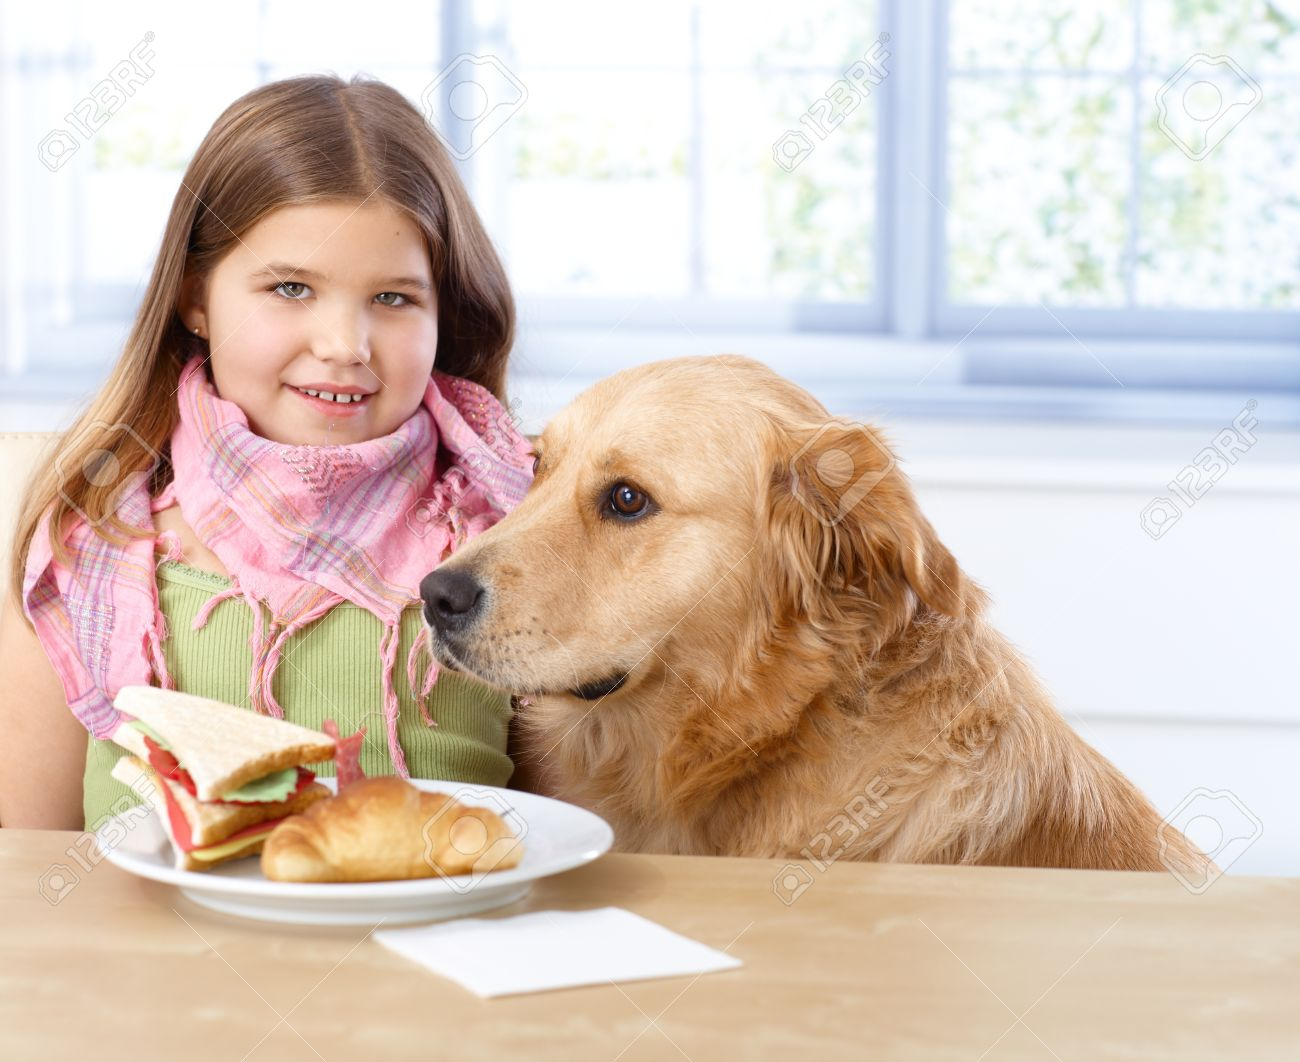 Portrait of little girl sitting at table having lunch, dog sitting next to her. Stock Photo - 13250598